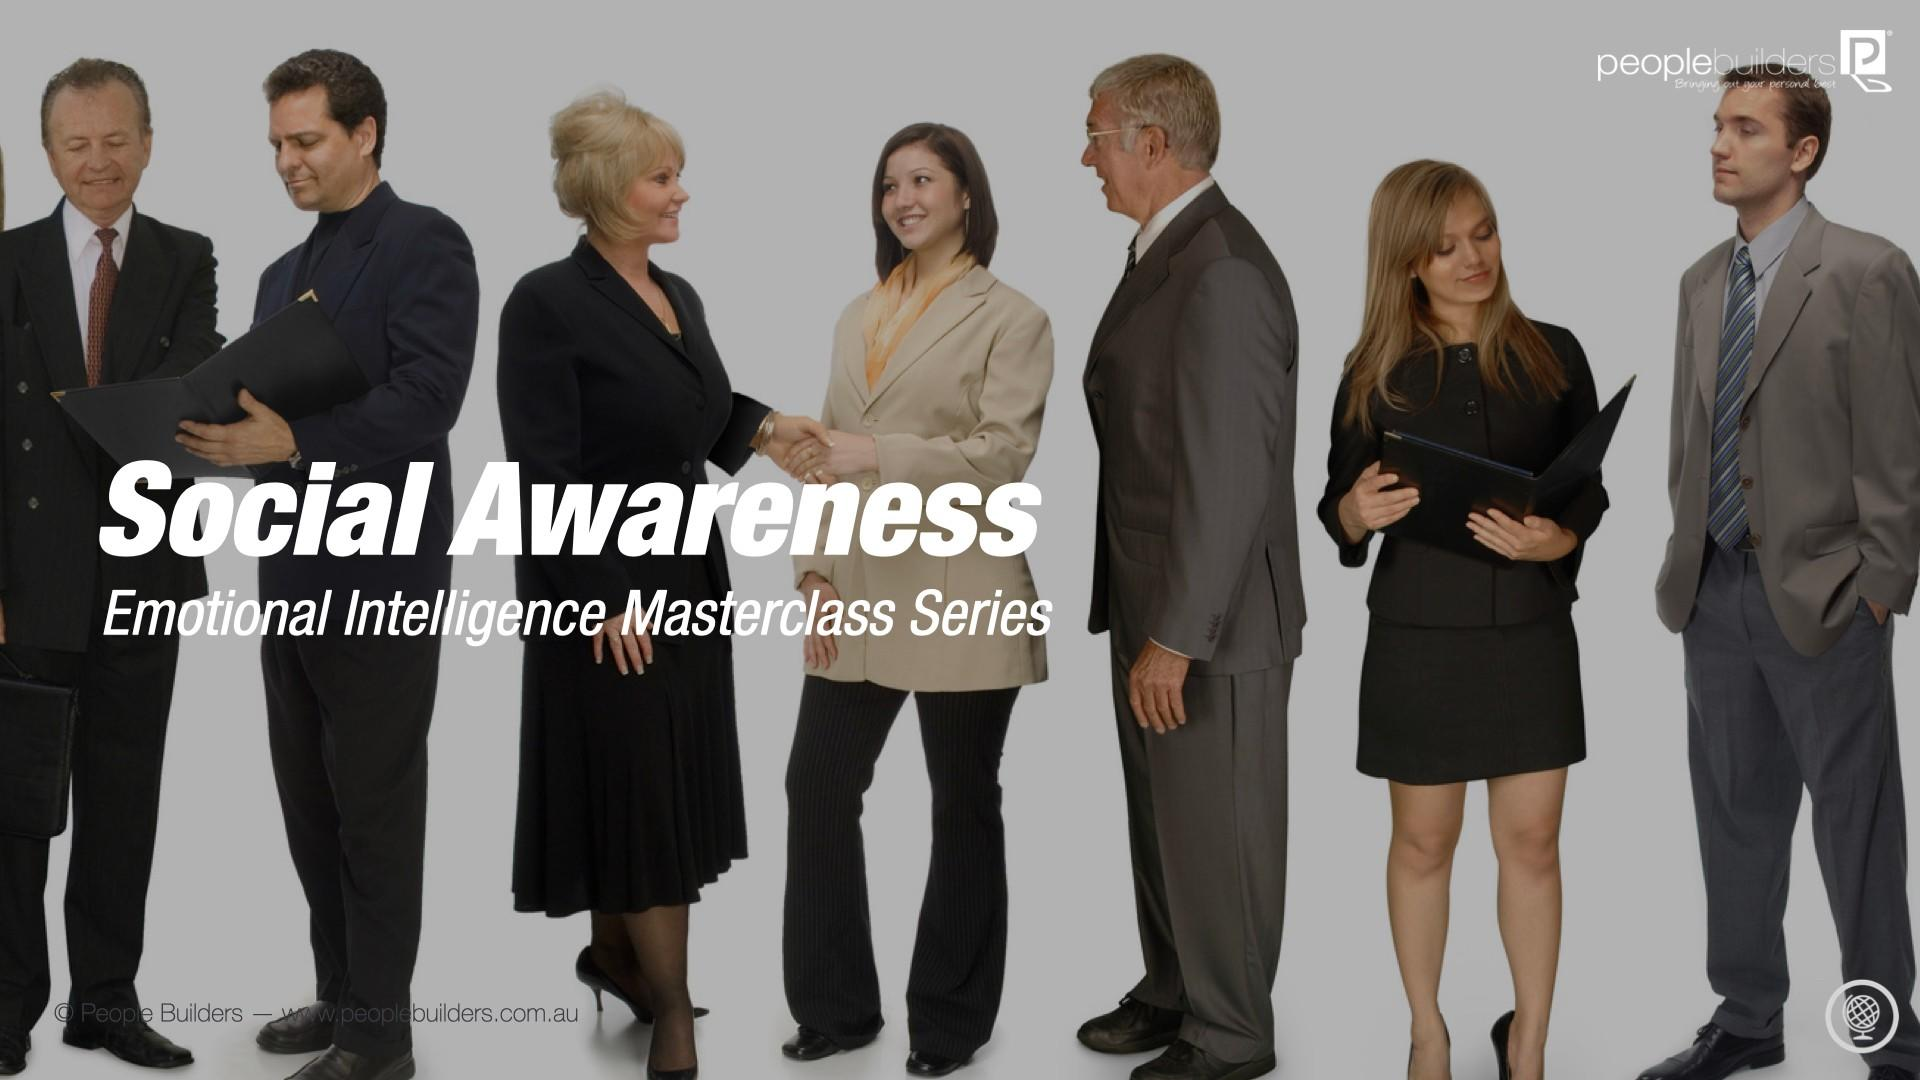 A group of business men and women working harmoniously together because they have social awareness.